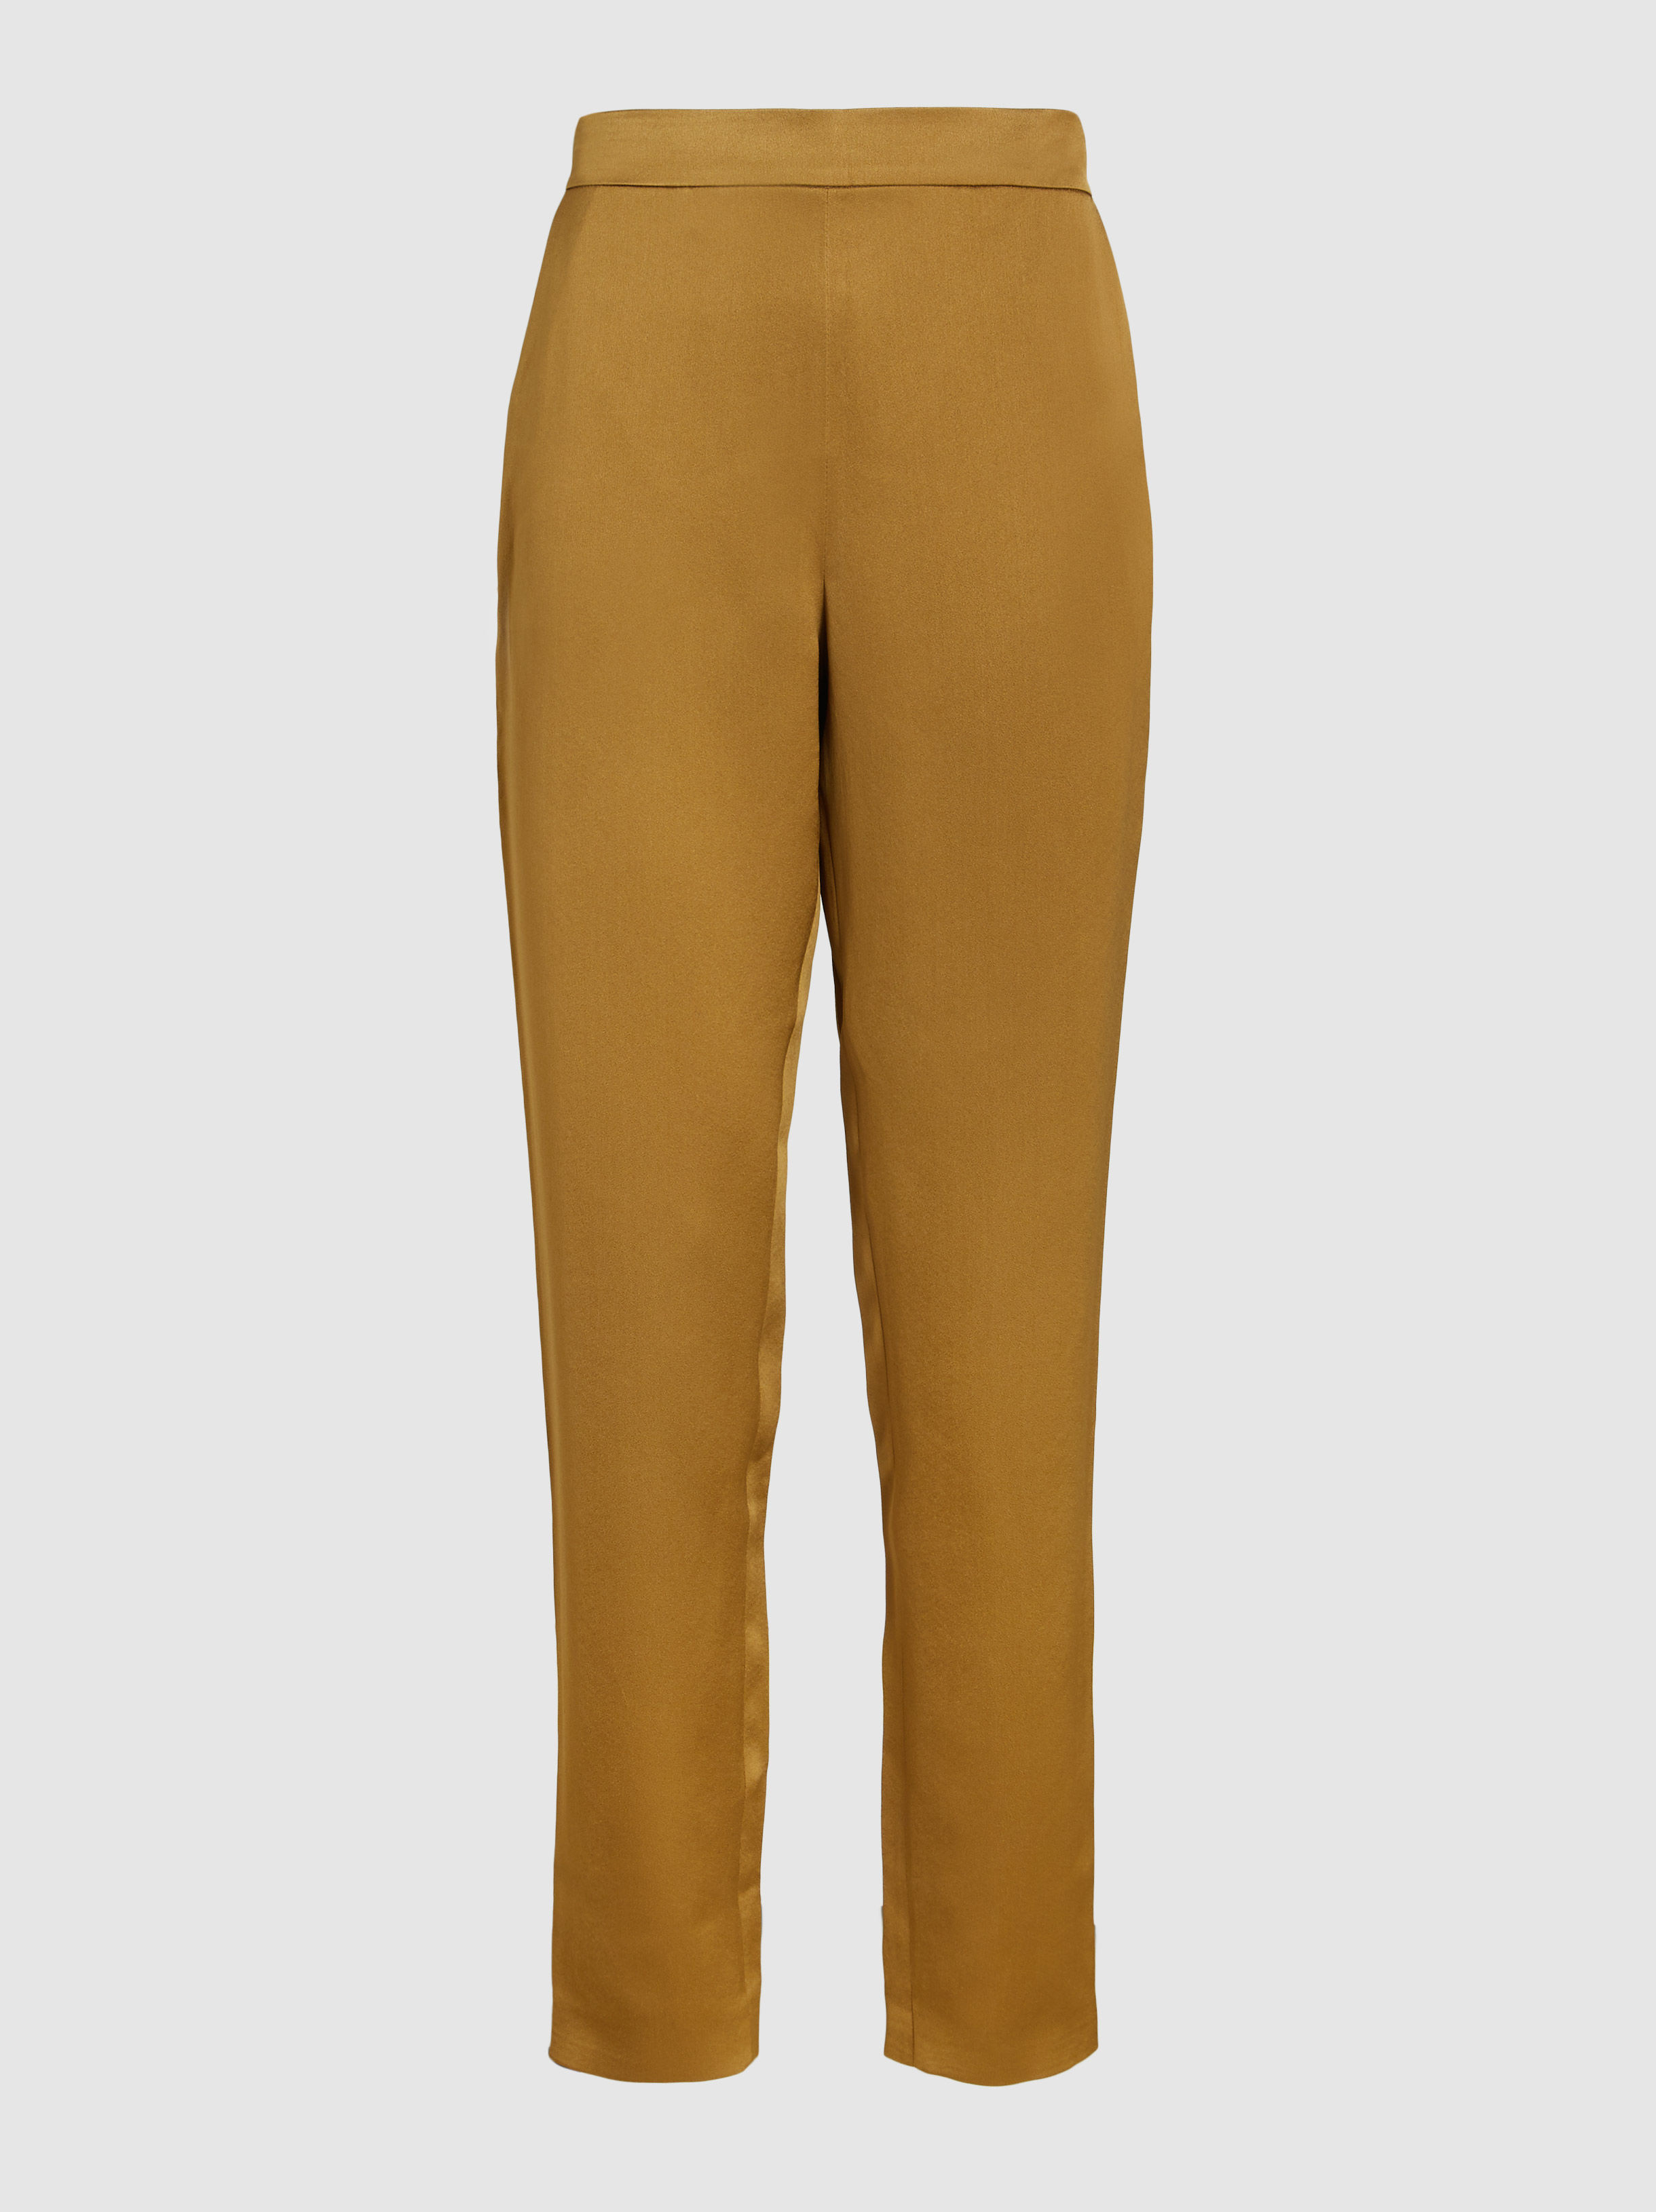 LAYEUR - Rosa Tapered Crepe Trousers | The Modist